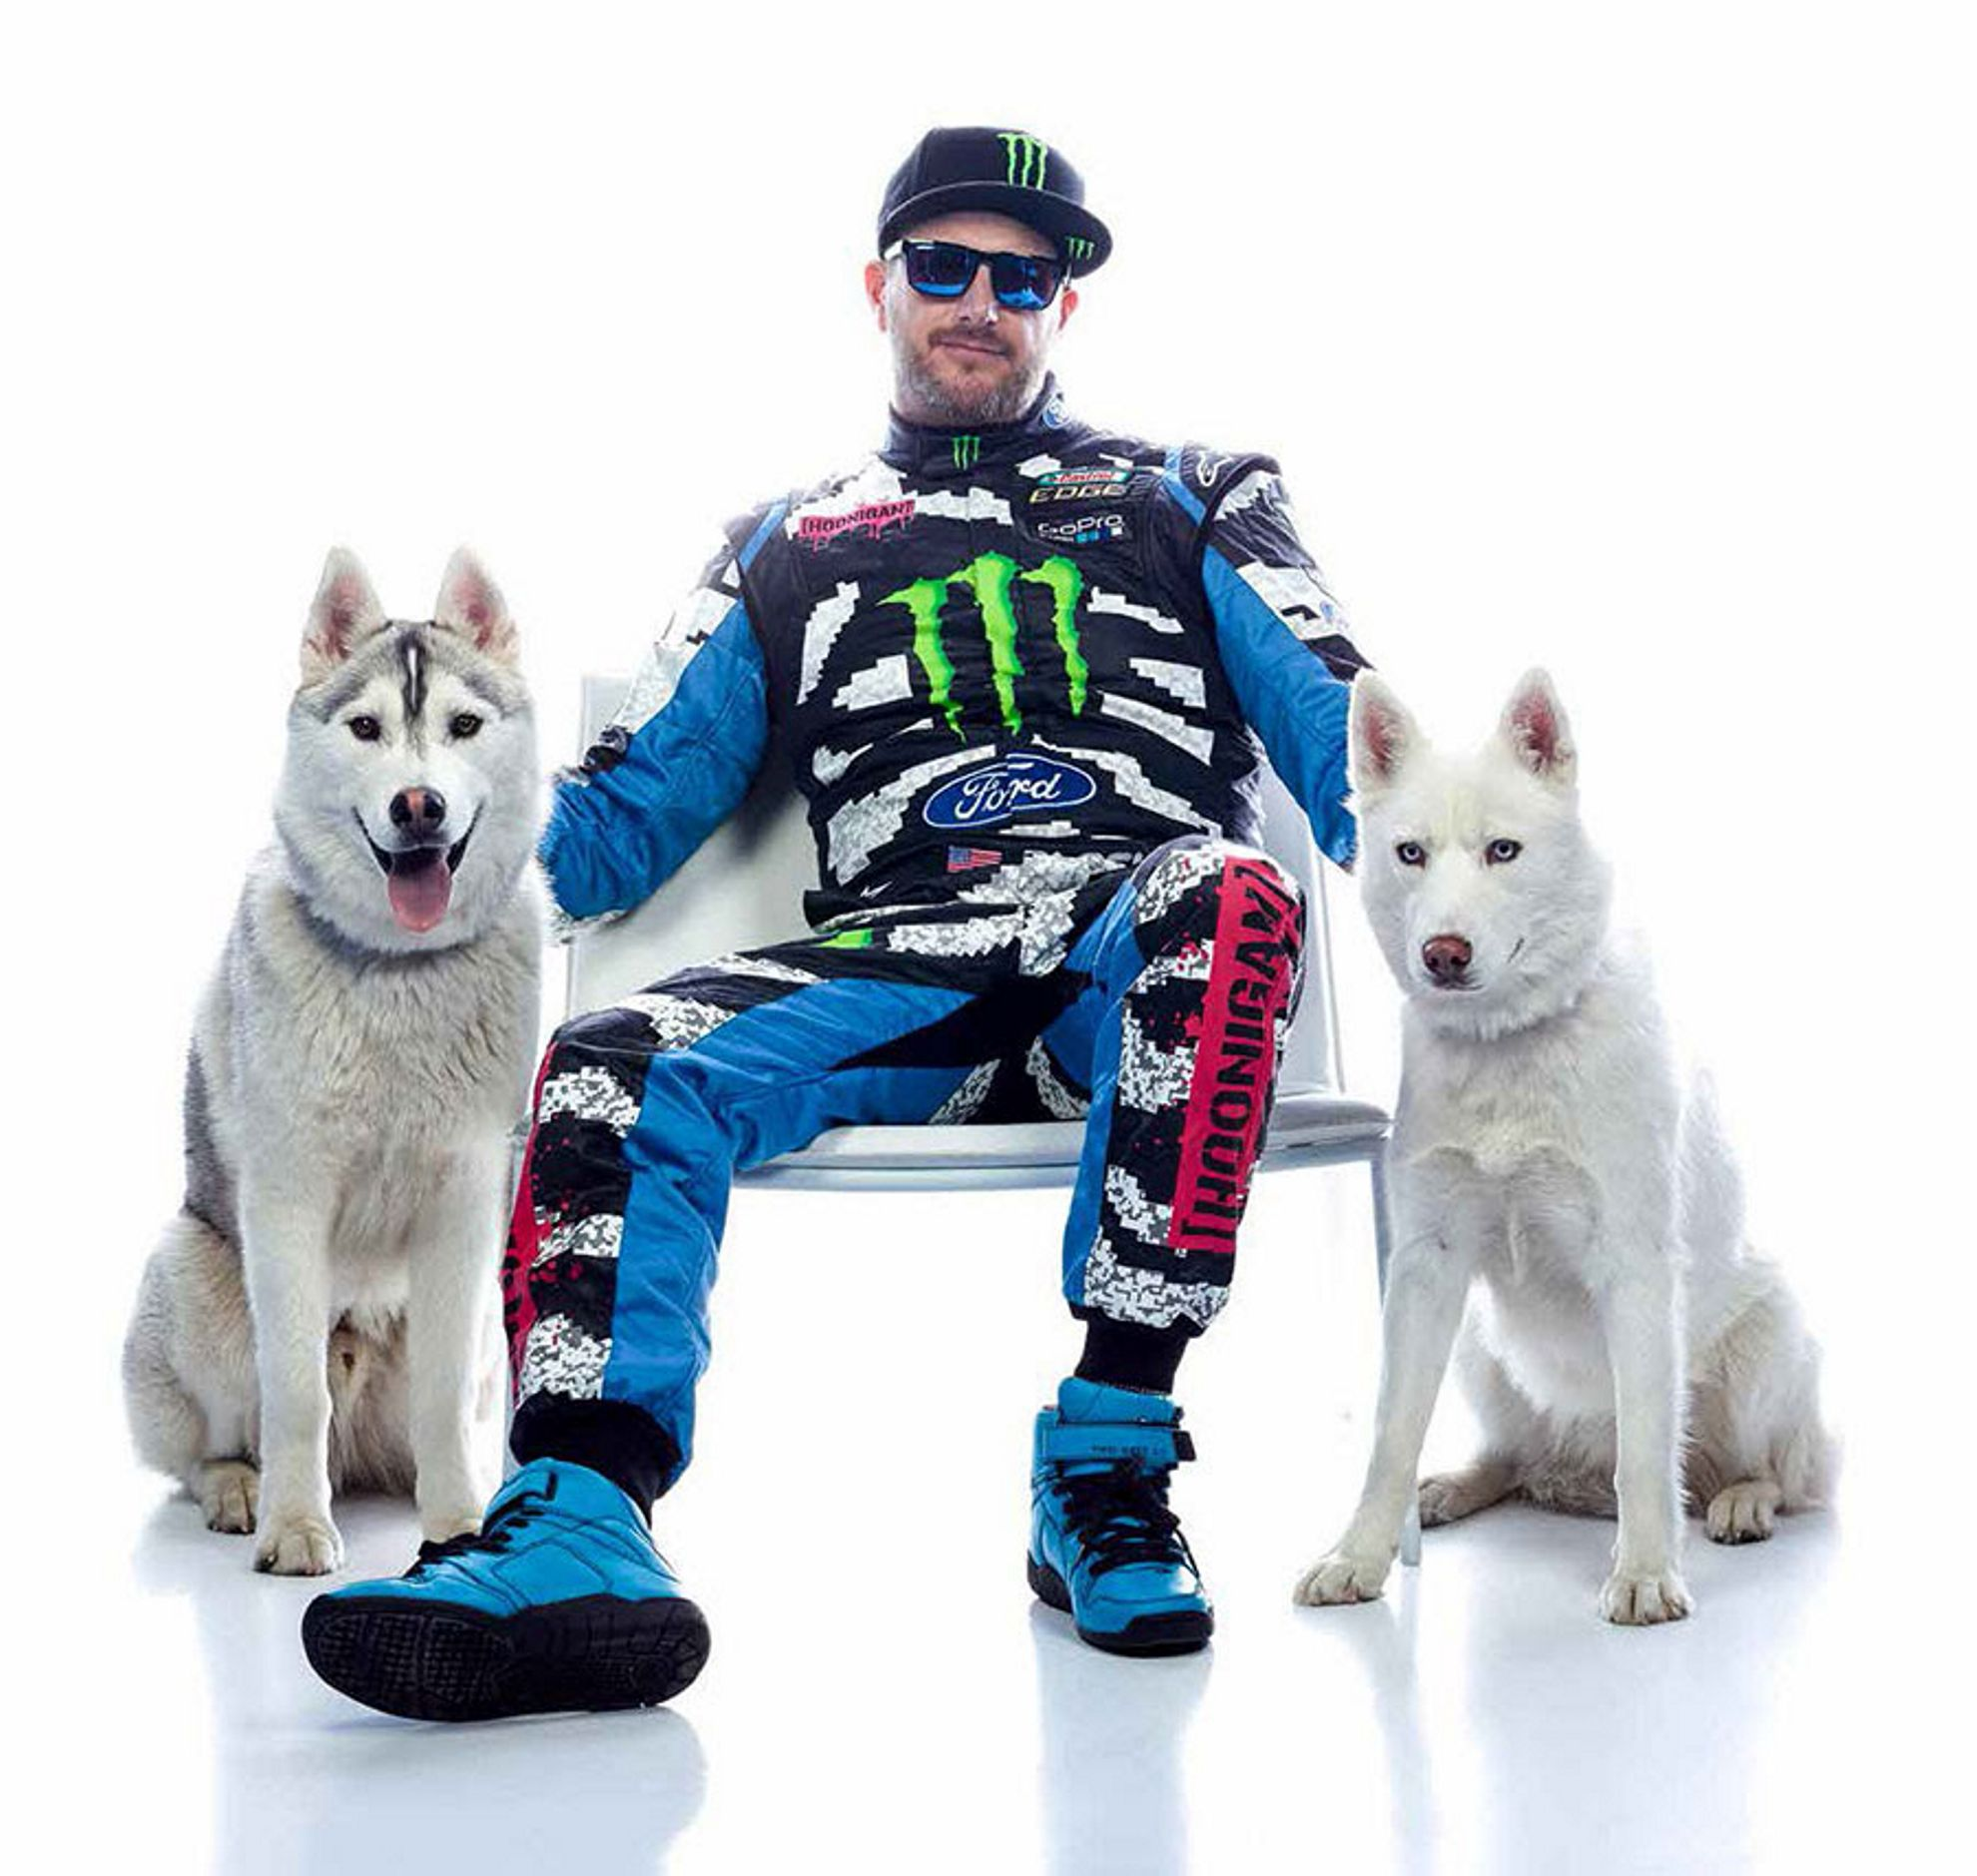 Ken Block Set To Dominate 2014 With Epic Race Schedule And